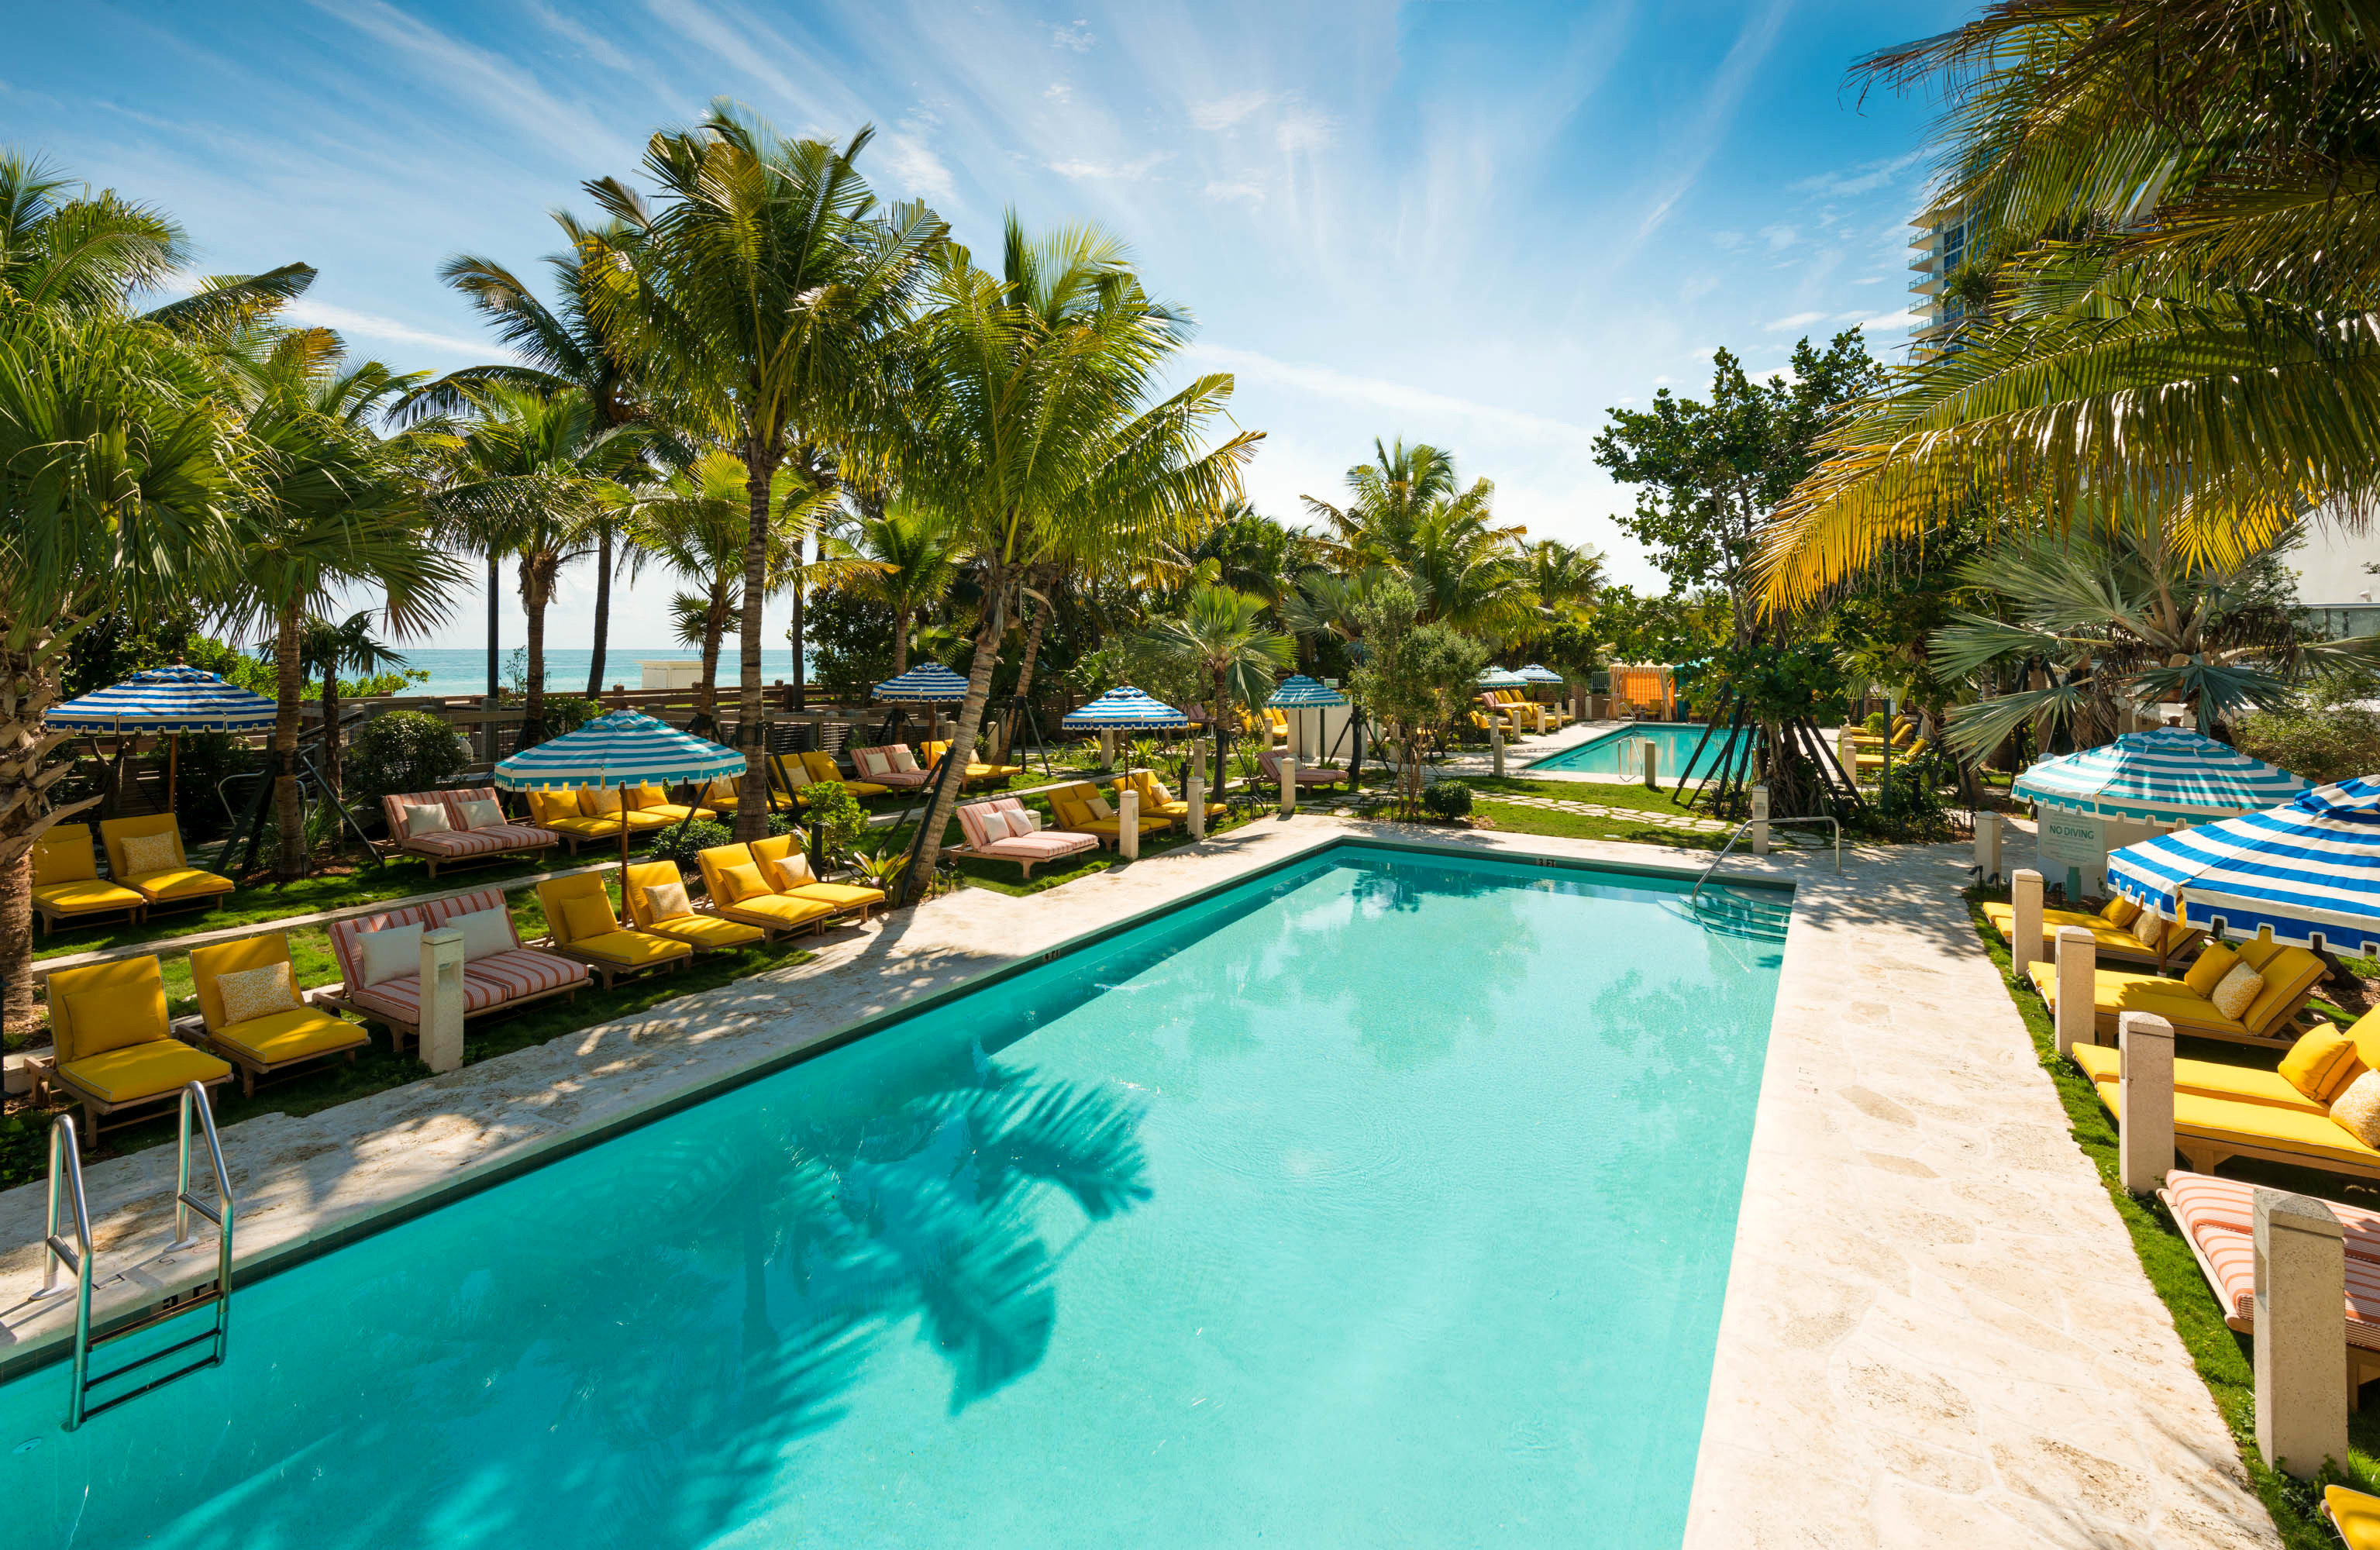 israel state miami in to of come hotel garden cheap the iconic hotels celebrate beach sagamore gardens years together pool